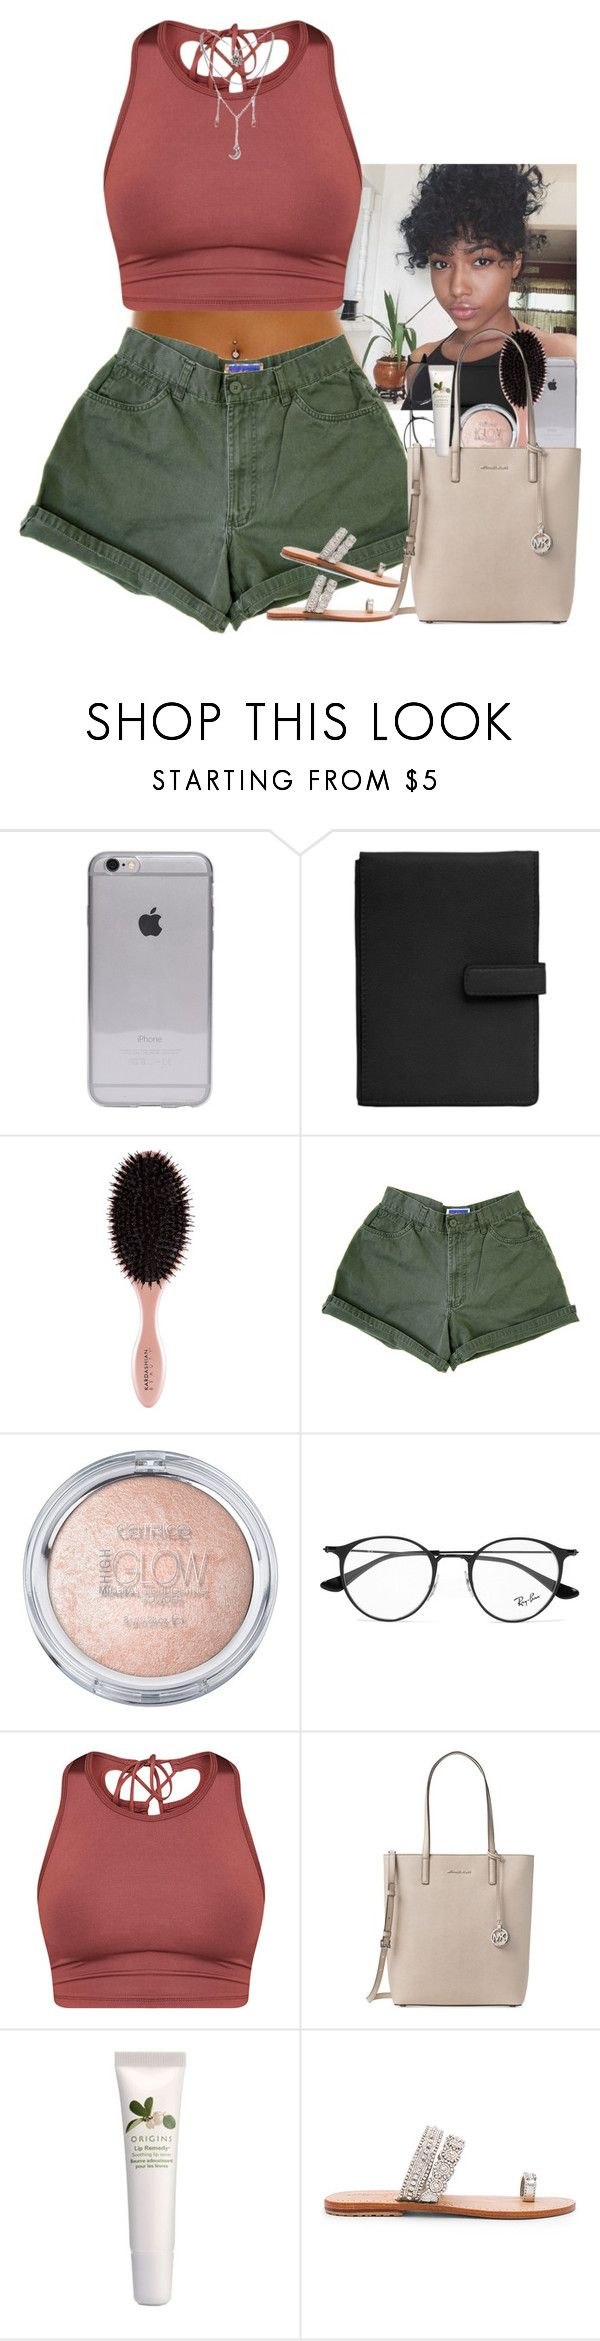 """""""Drake- Passionfruit"""" by mxnvt ❤ liked on Polyvore featuring TravelSmith, Ray-Ban, Michael Kors, Origins and Mystique"""